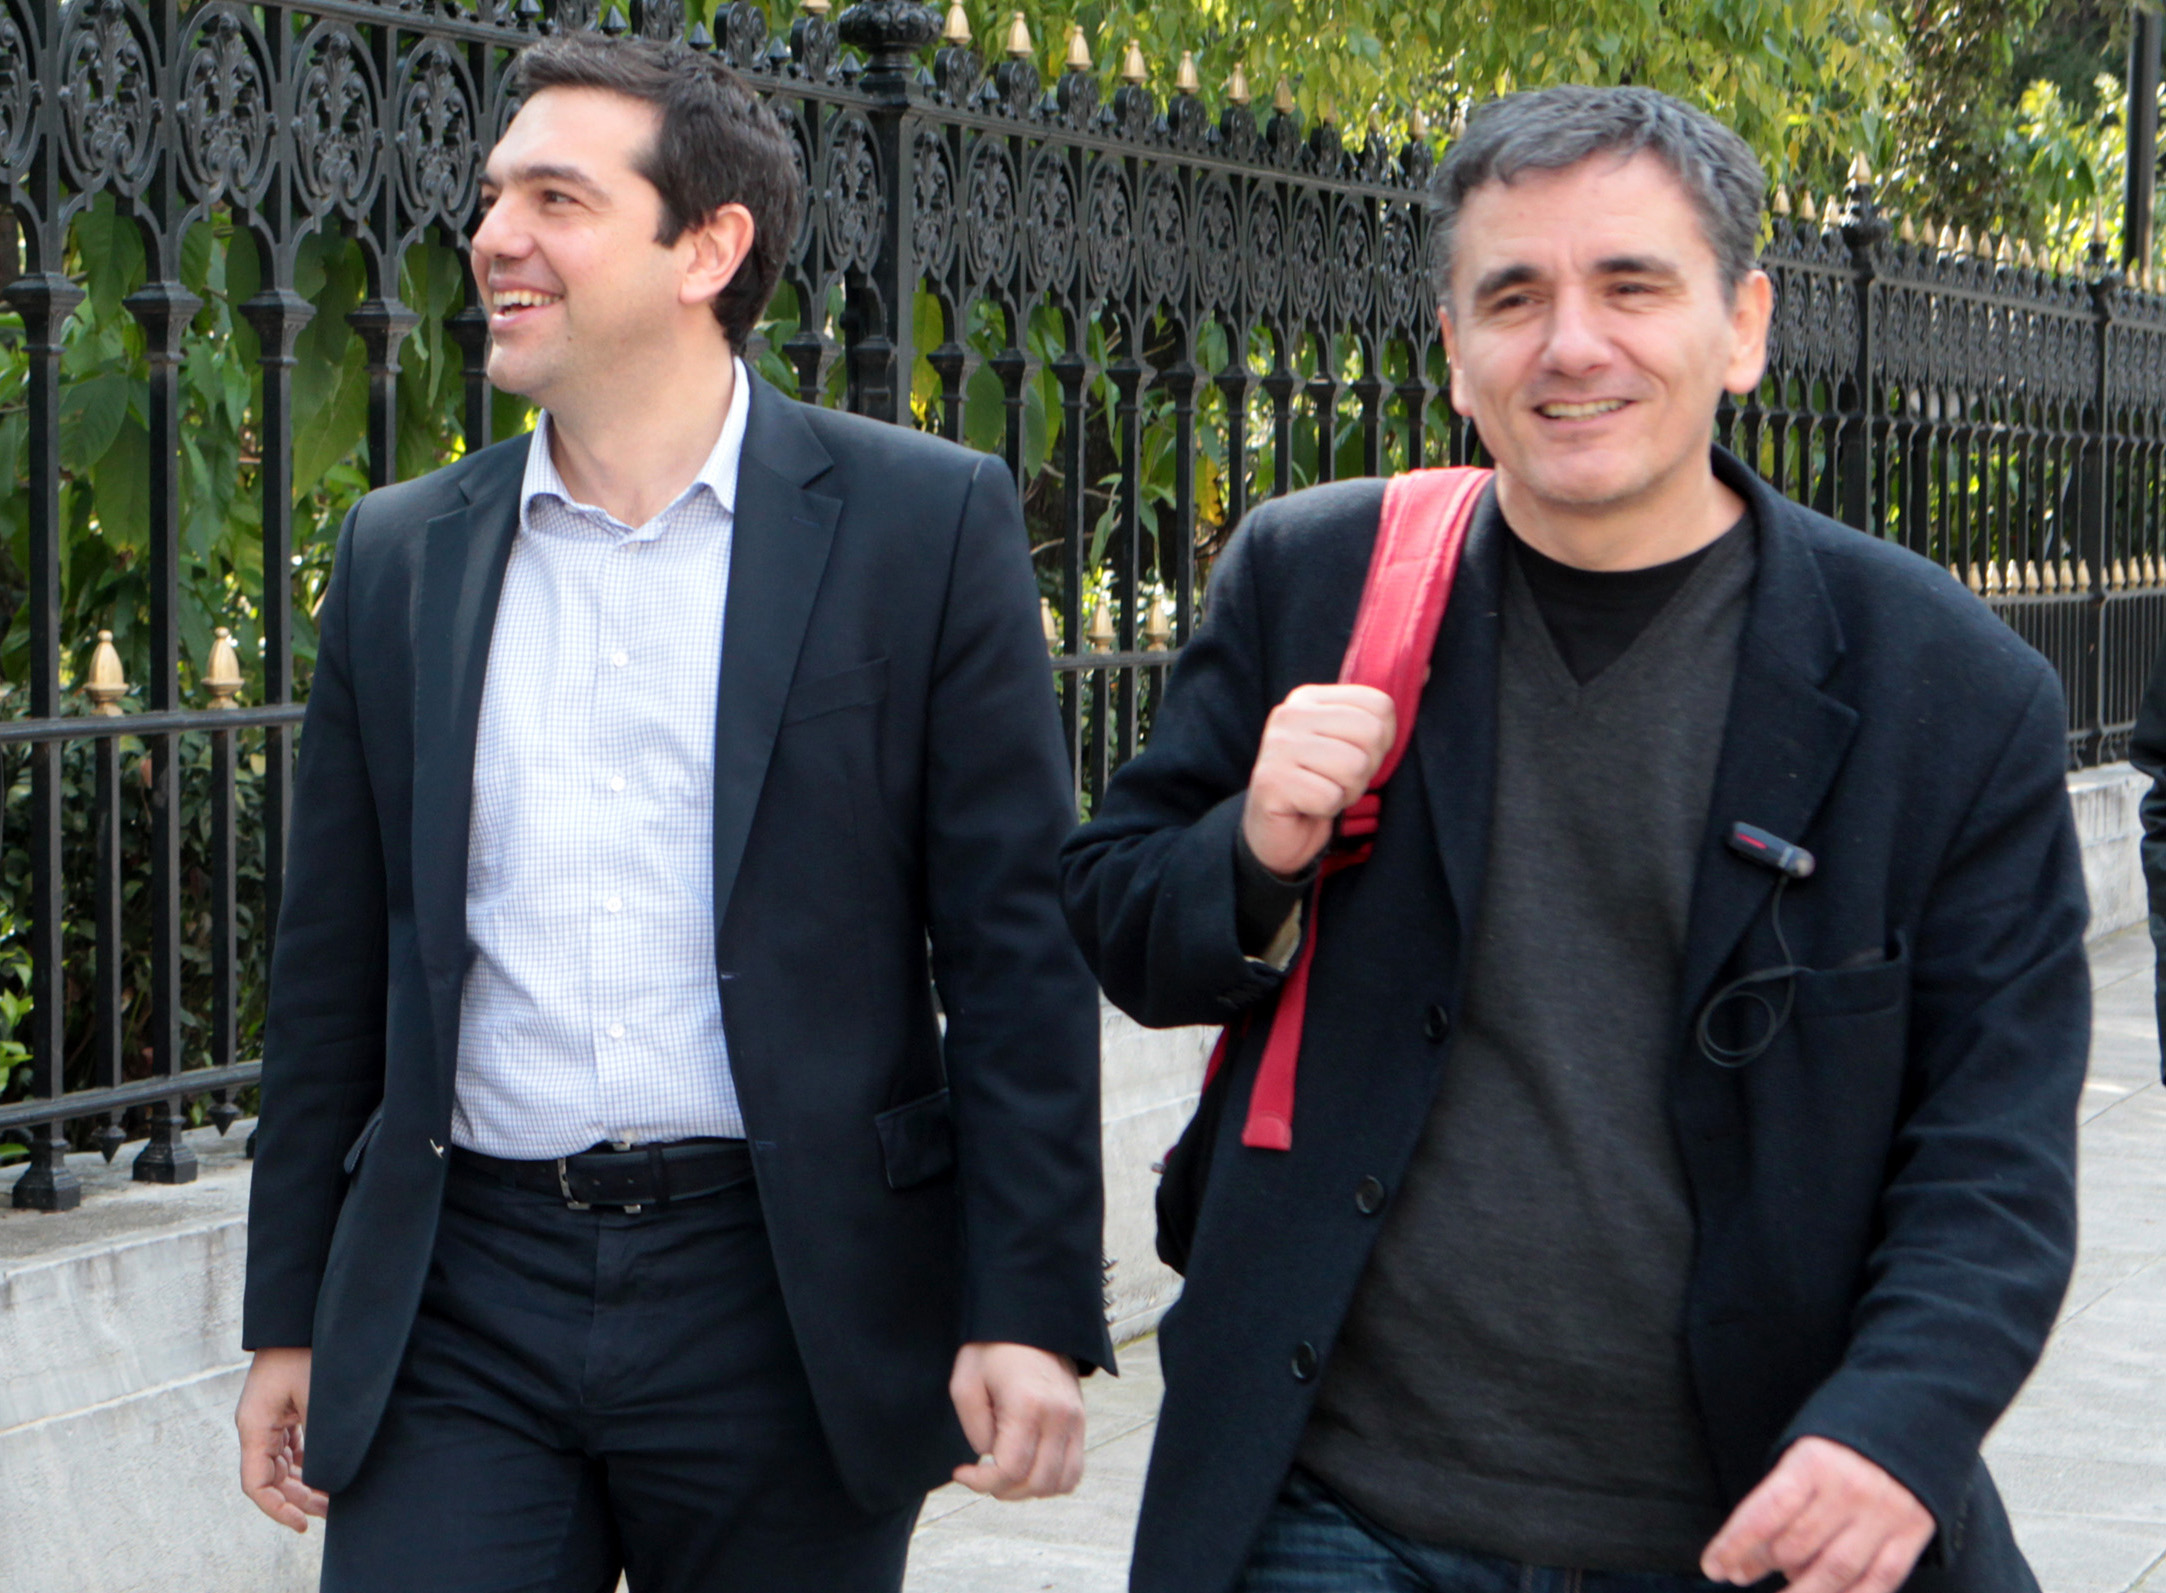 Euclid Tsakalotos: ENFIA reduction by 30% and reduction of tax advance by 50%